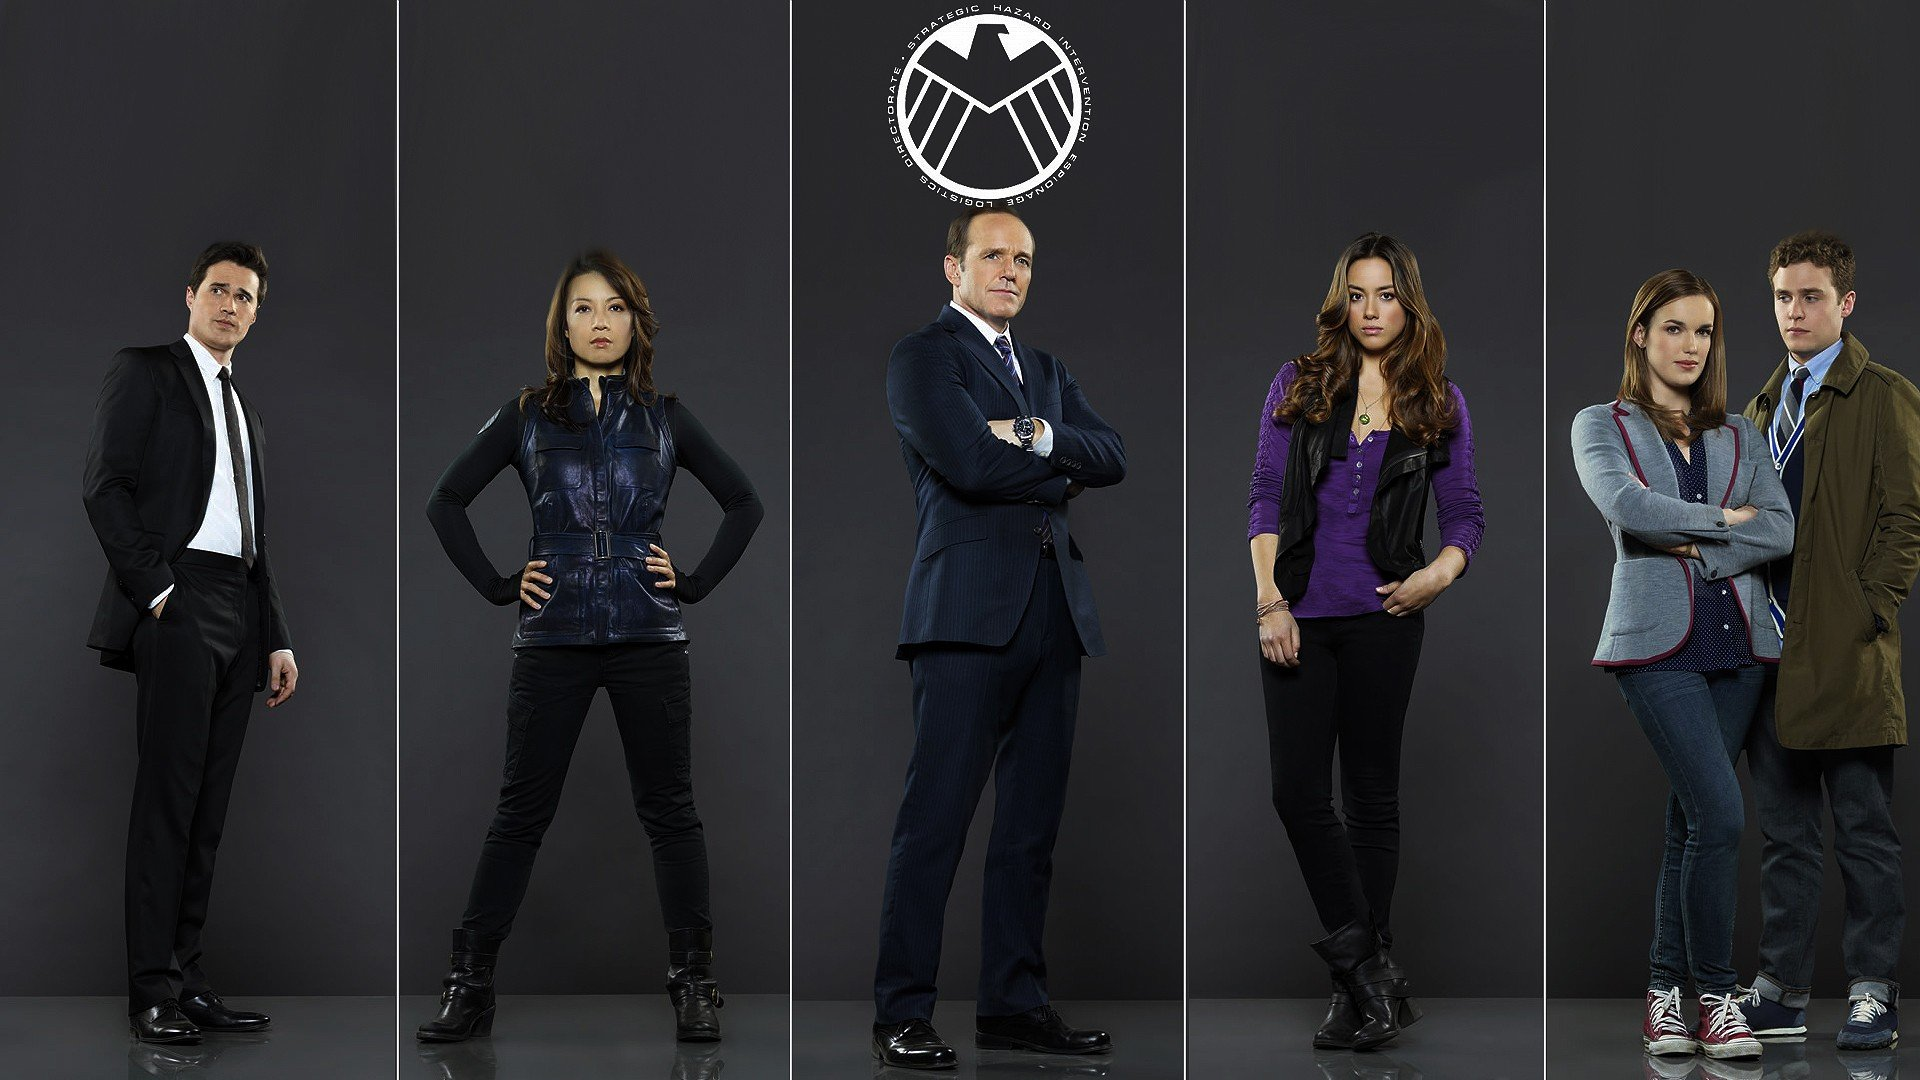 marvel's agents of s.h.i.e.l.d. full hd wallpaper and background